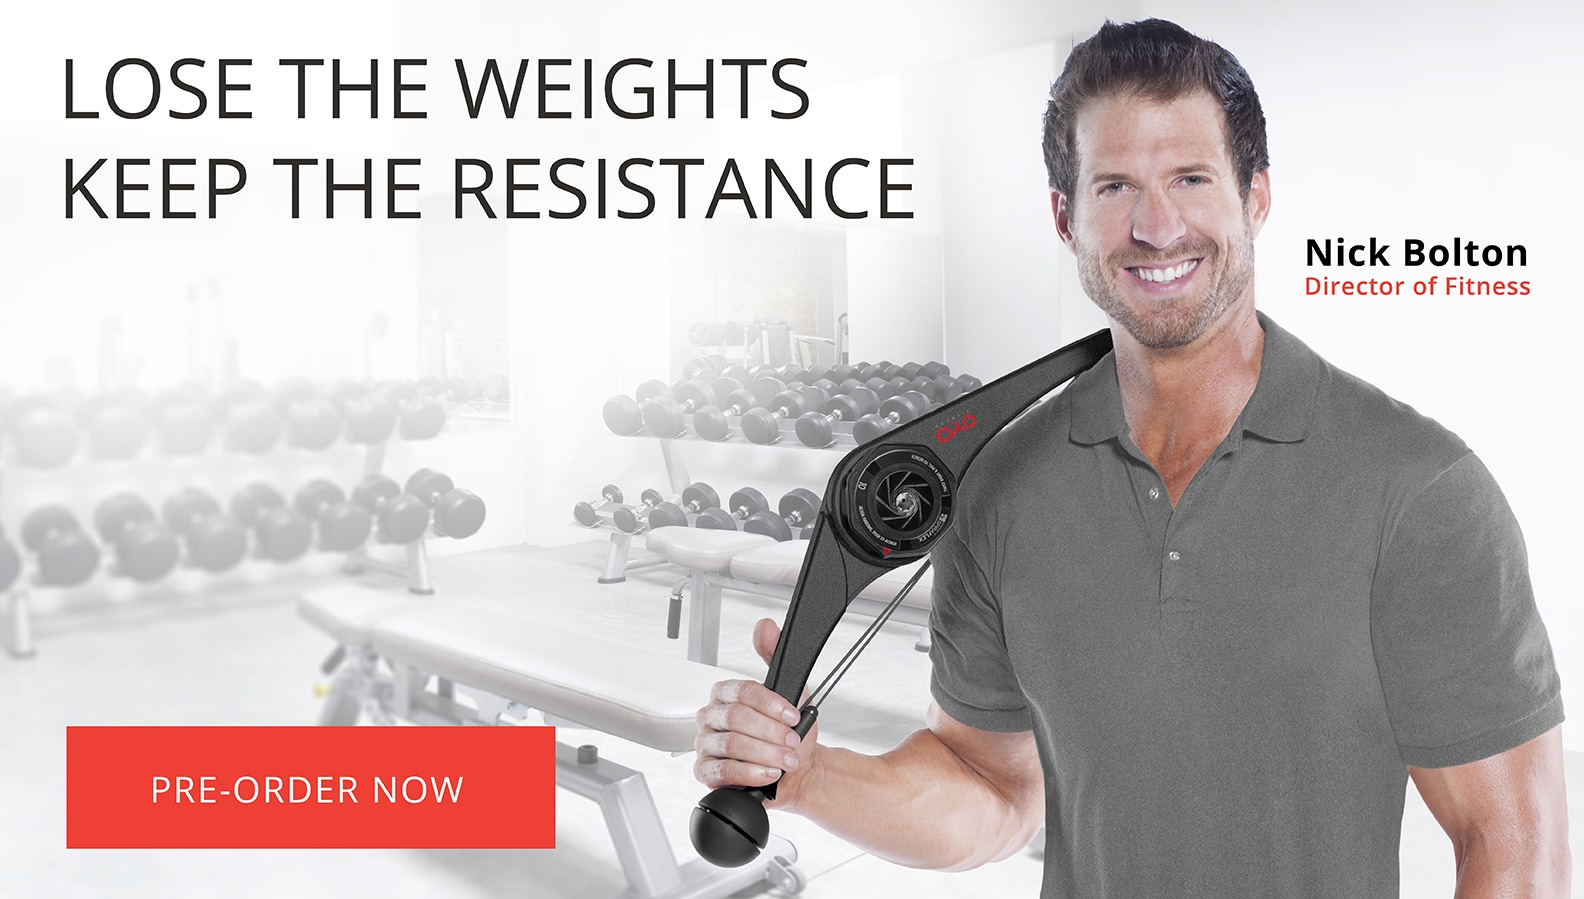 Nick Bolton Fitness Director: Lose the Weights Keep the Resistance